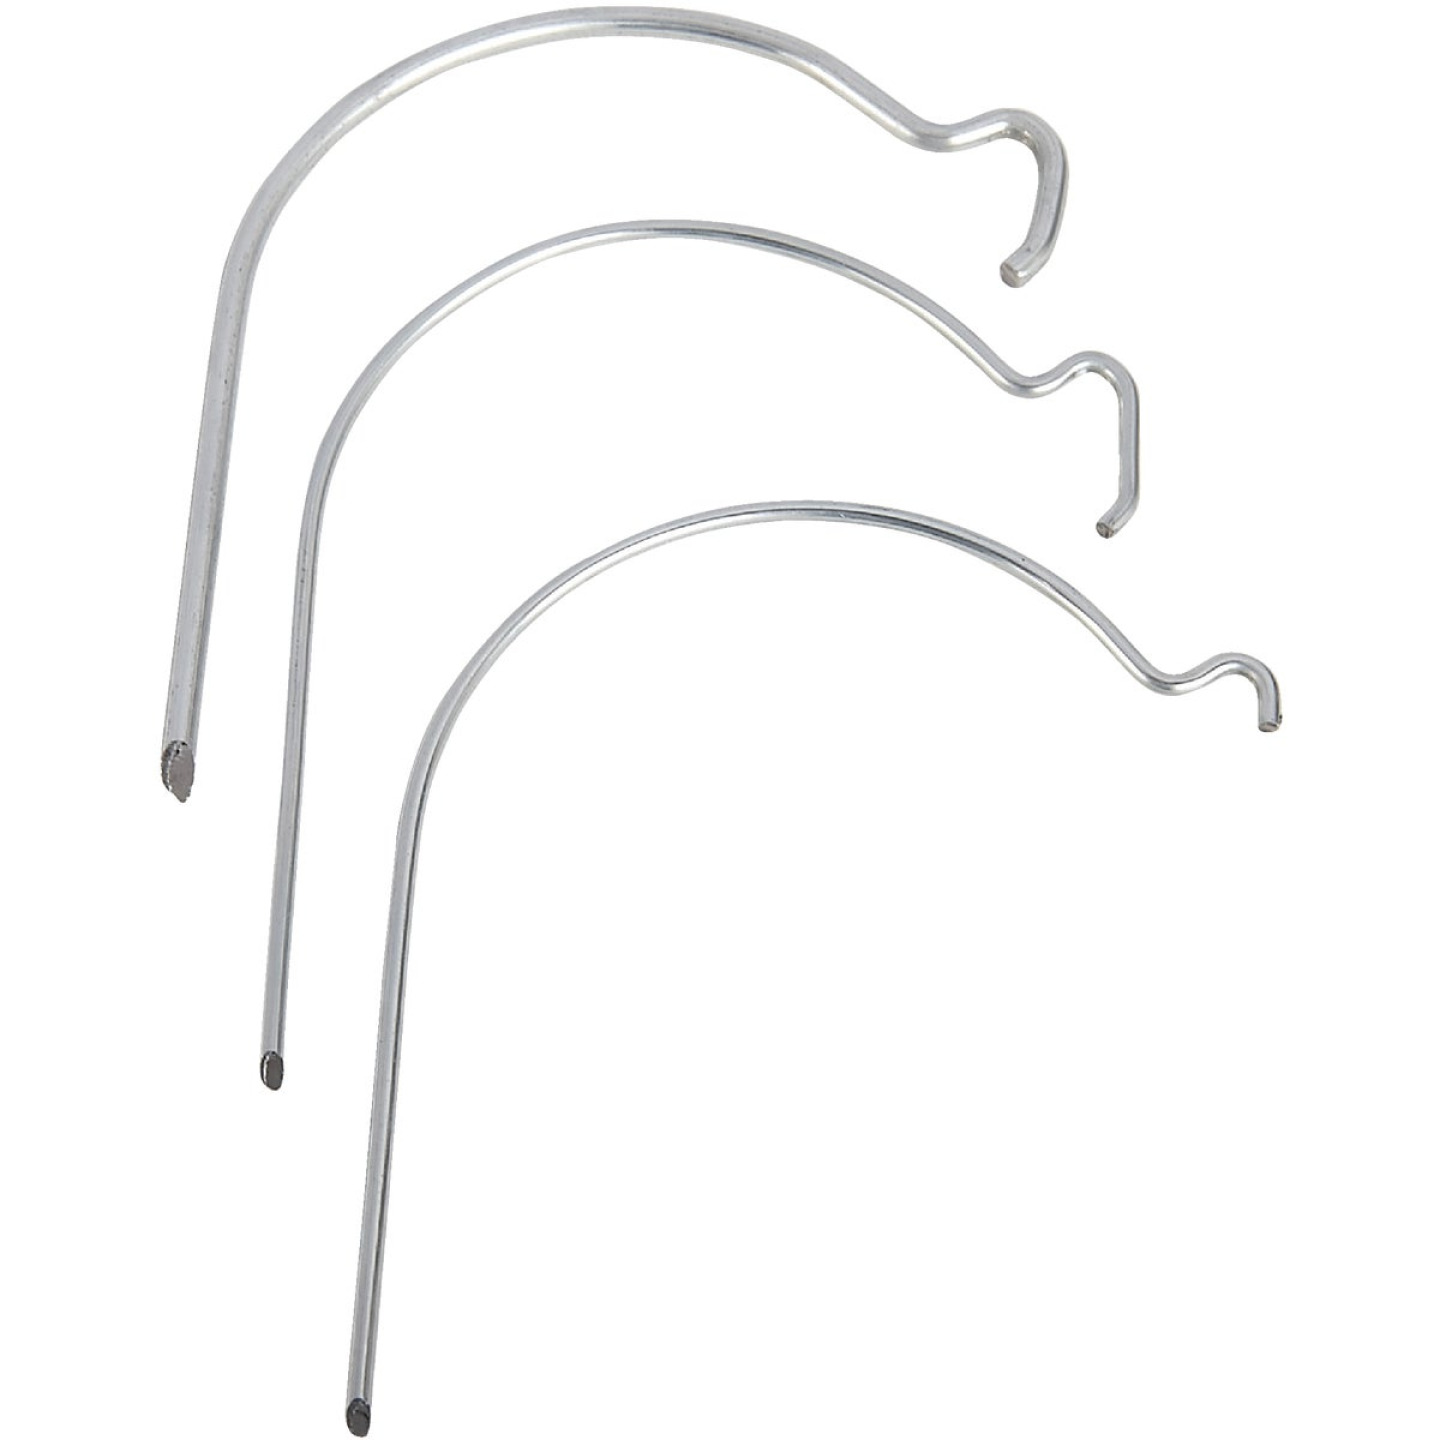 Monkey Hook Hanger with Perfect Install Guides (30 Count) Image 3